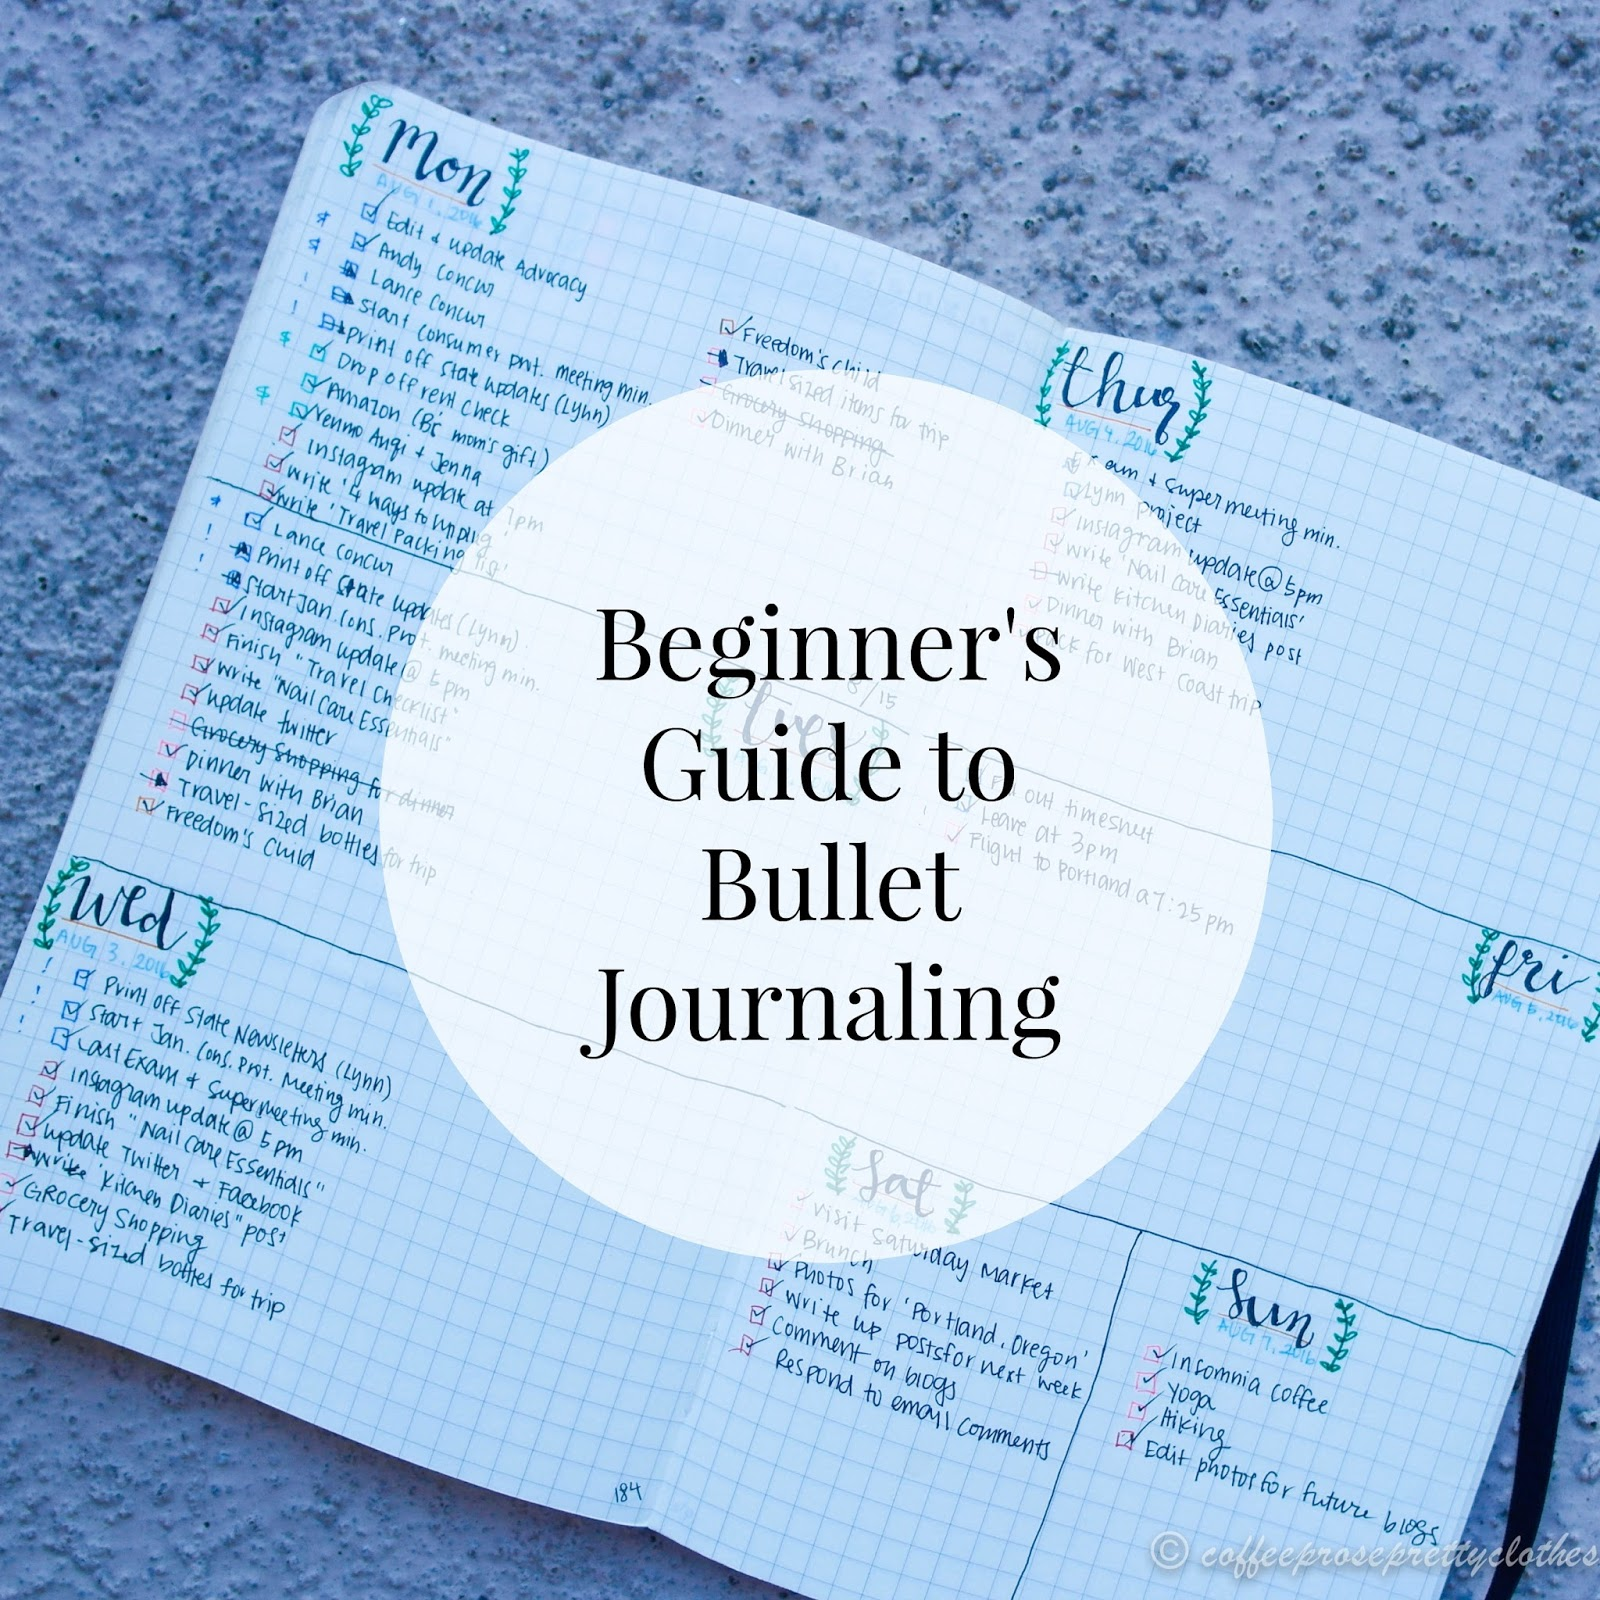 Beginner's Guide to Bullet Journaling